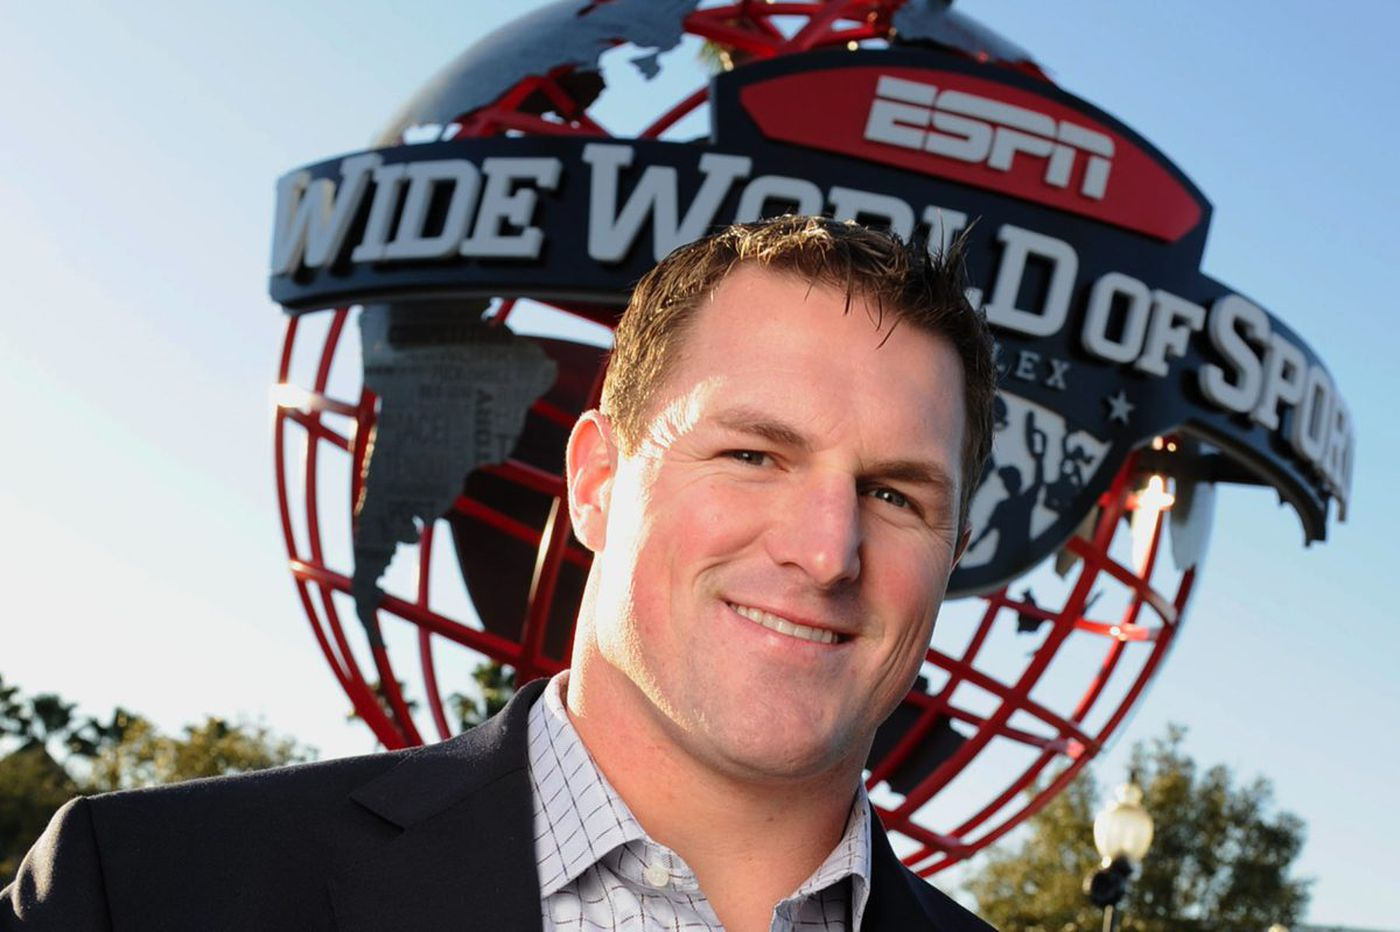 ESPN's Jason Witten defends Cris Collinsworth, talks Tony Romo and is ready for Eagles fans